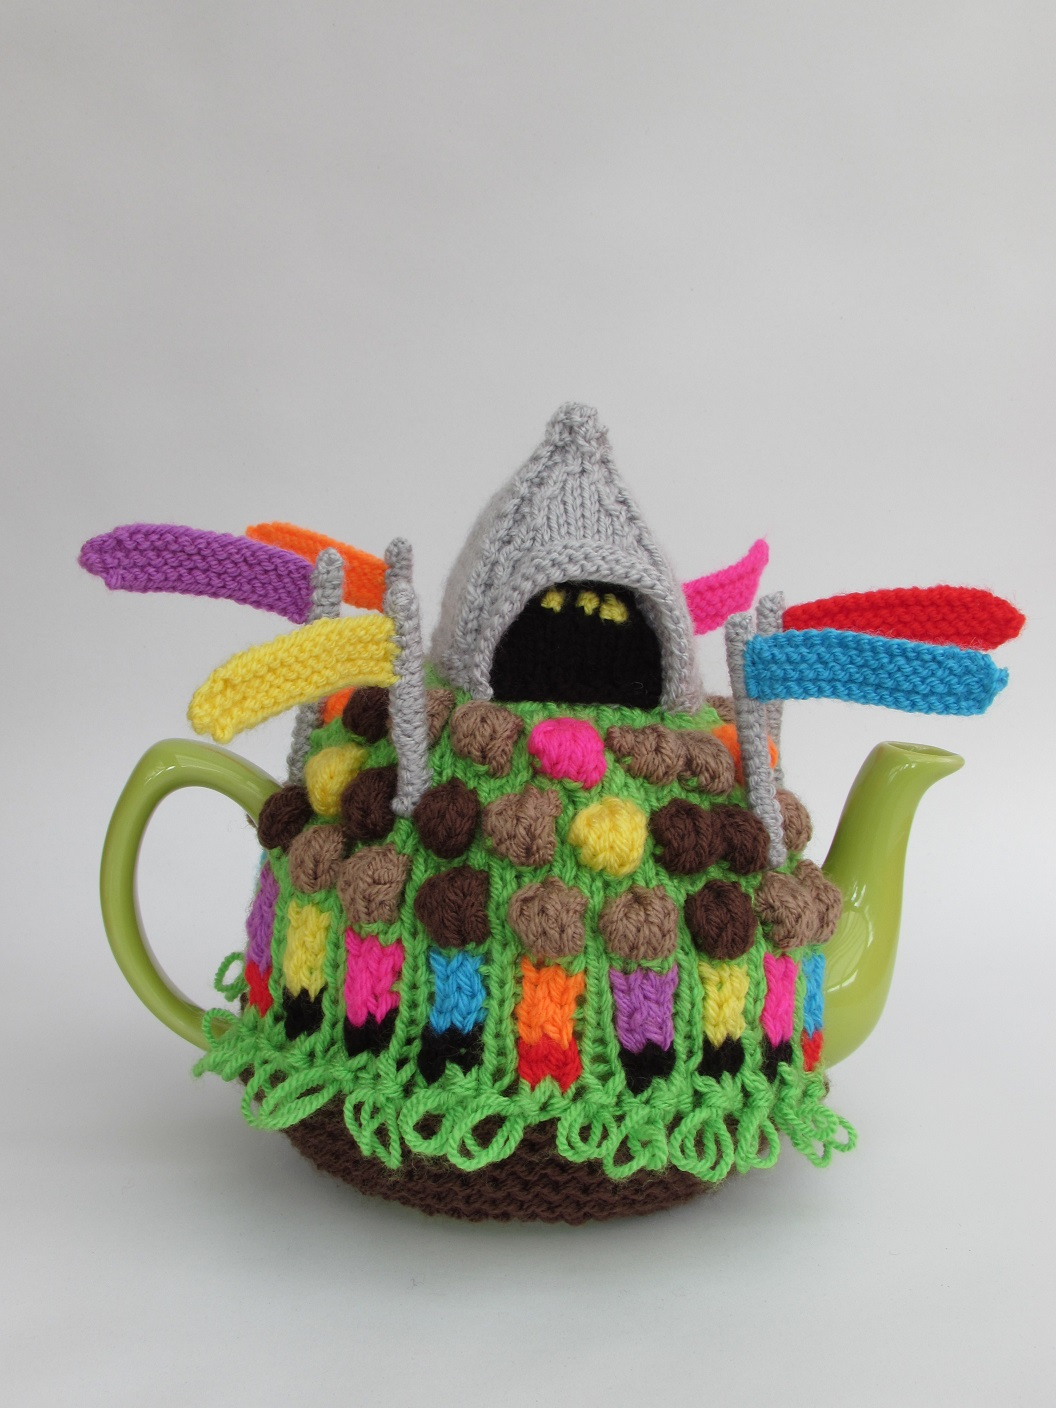 Glastonbury Festival knitting pattern